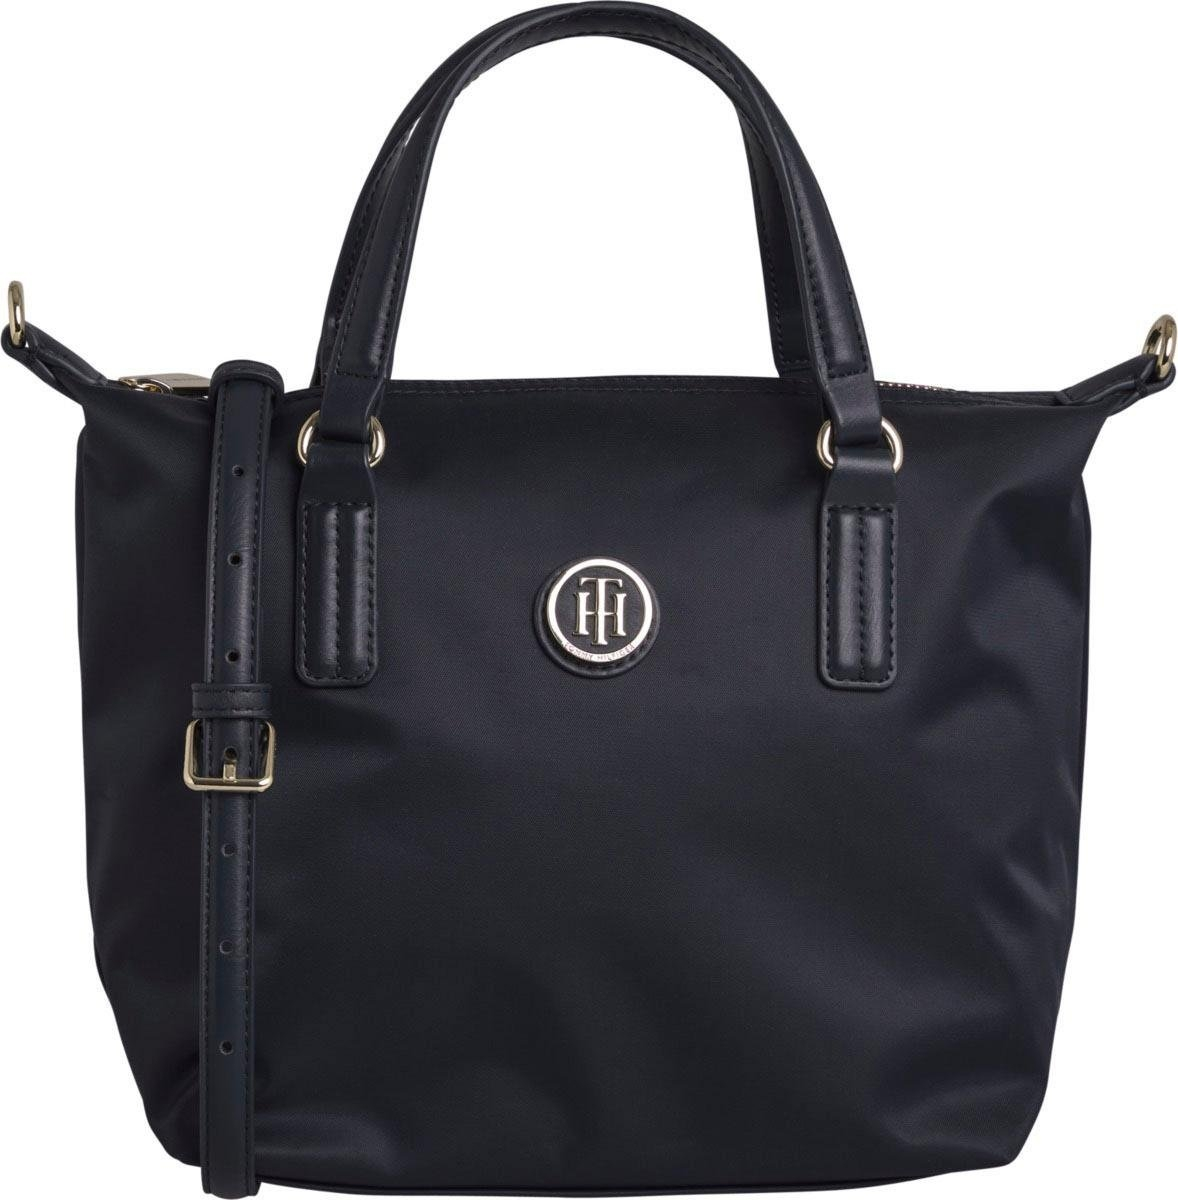 TOMMY HILFIGER tas »POPPY SMALL TOTE« online kopen op otto.nl